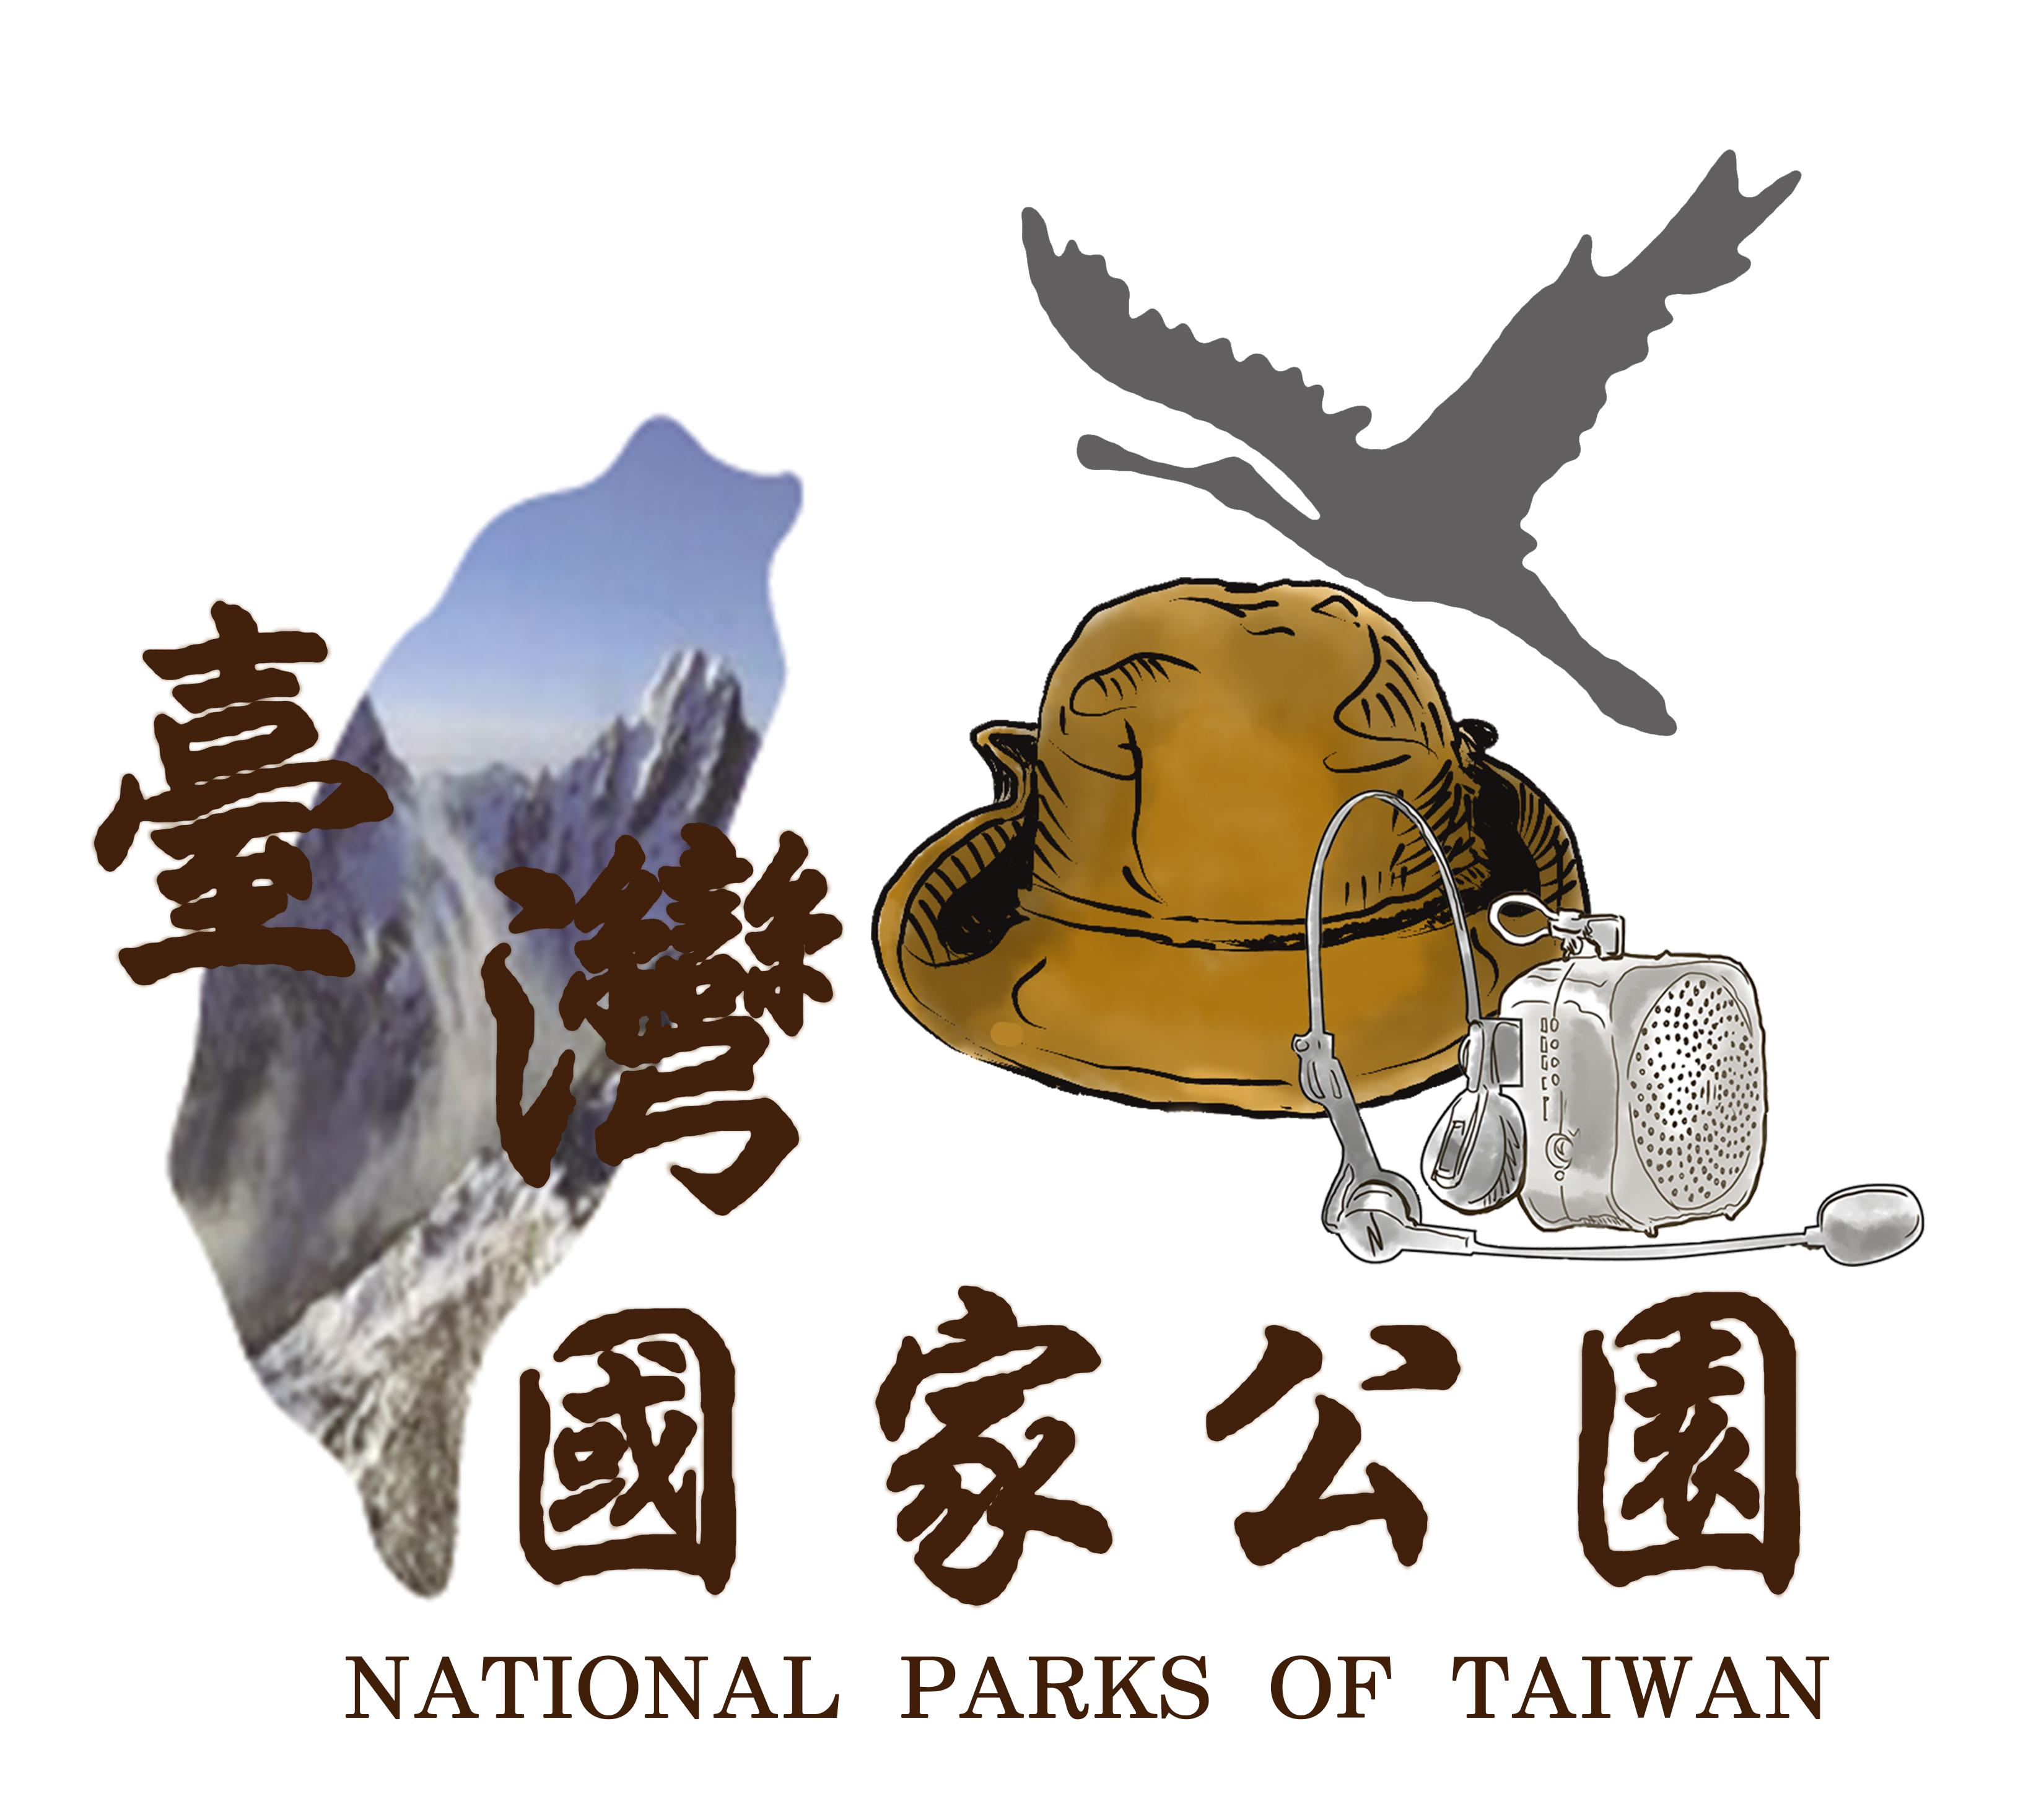 國家公園 national parks of taiwan